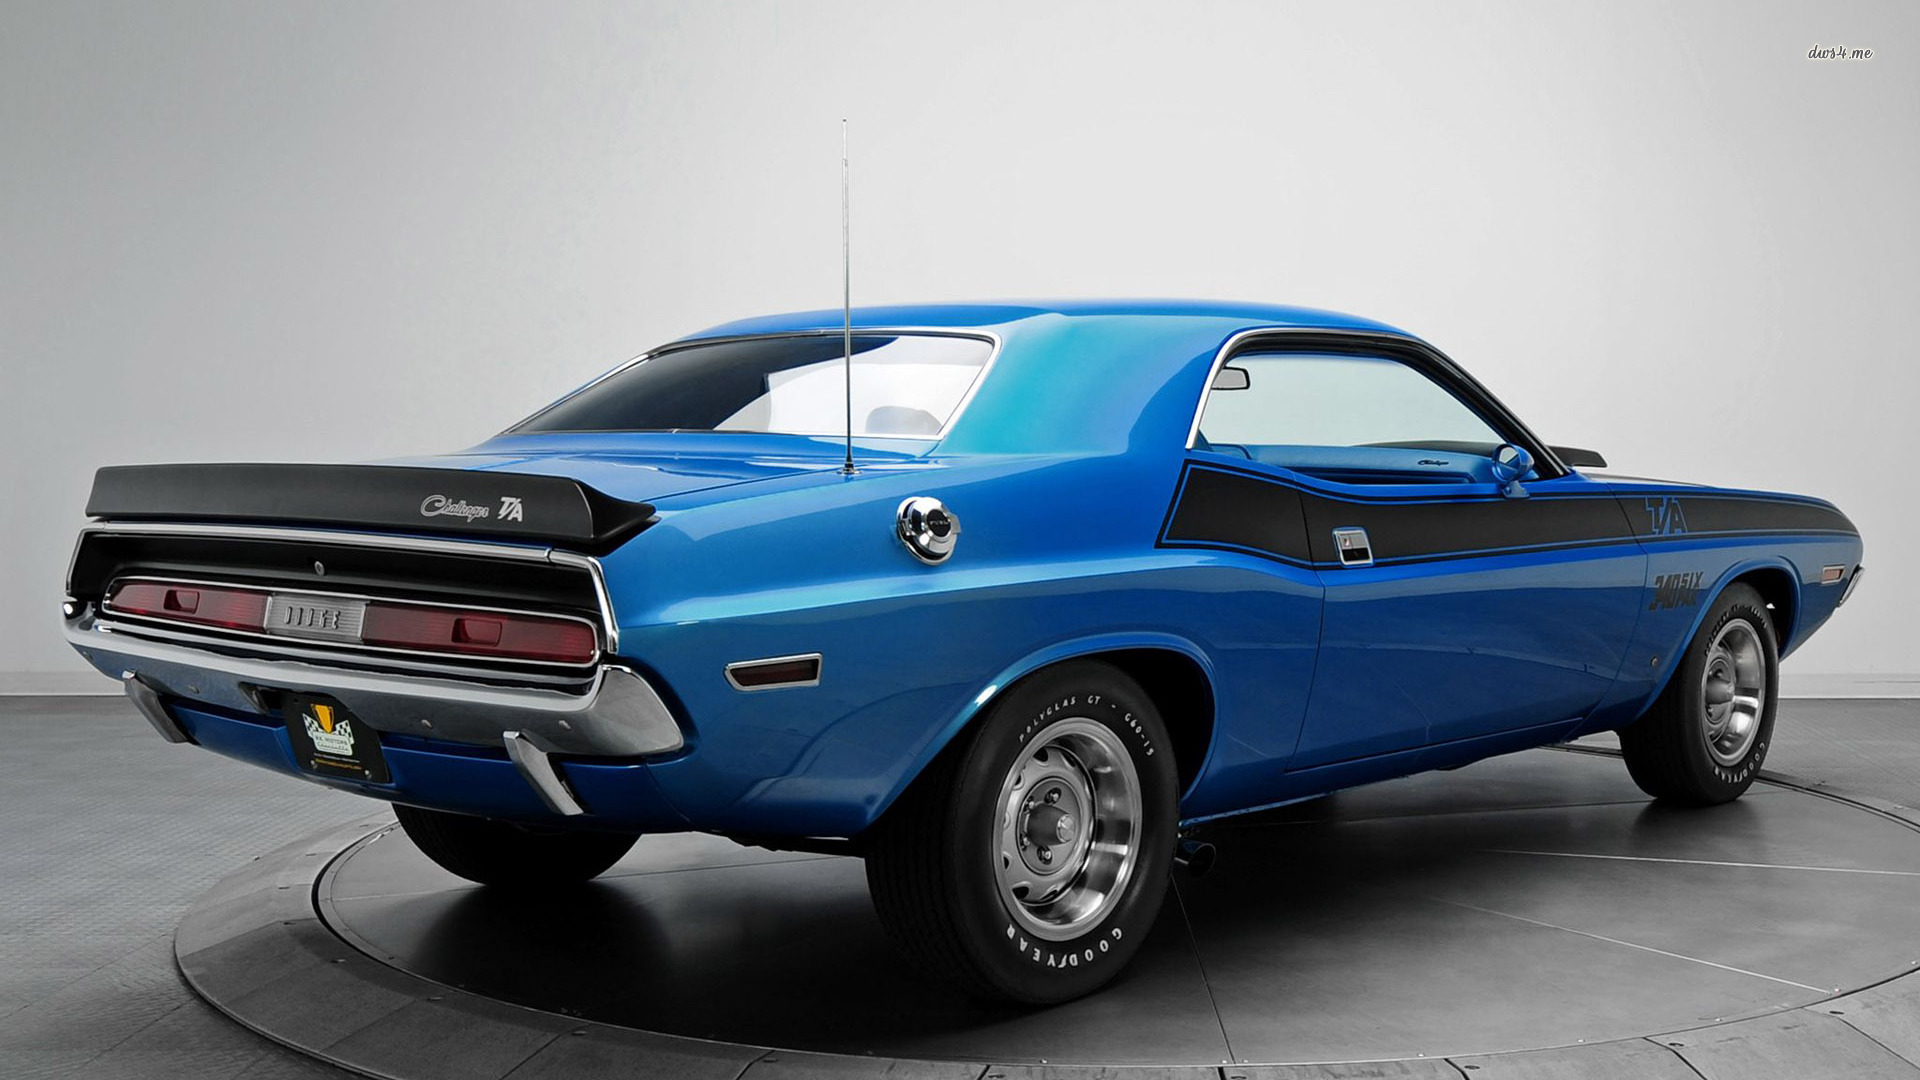 1970 dodge challenger wallpaper desktop wallpapersafari. Black Bedroom Furniture Sets. Home Design Ideas